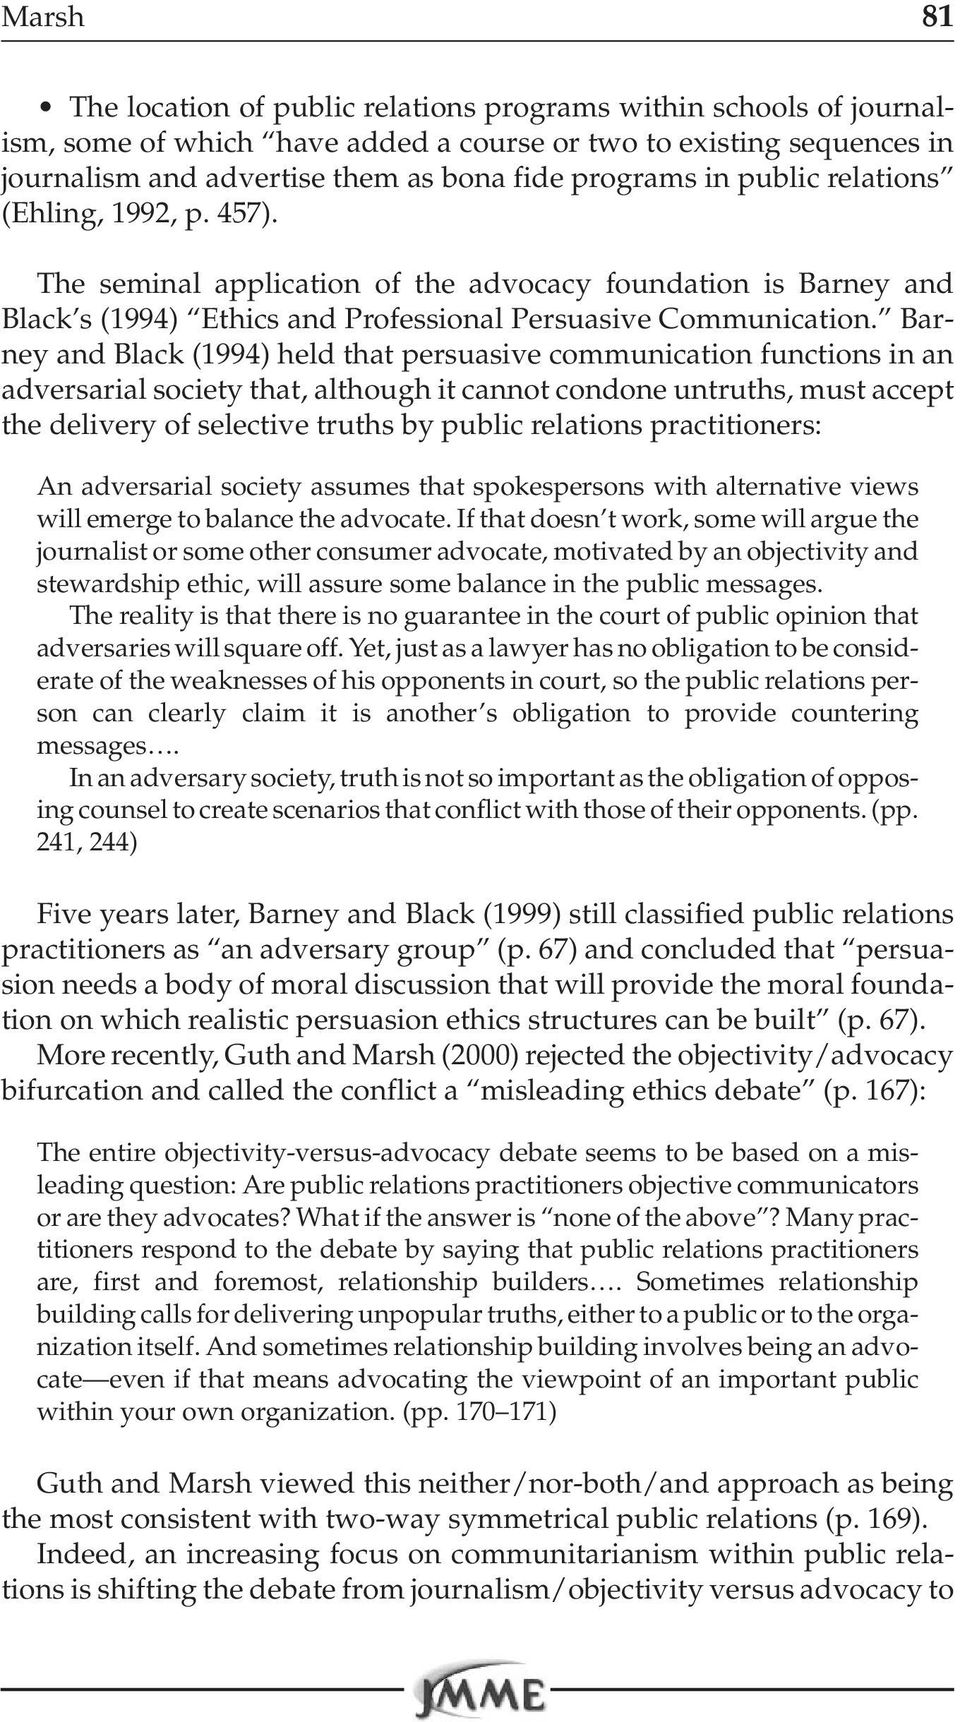 Barney and Black (1994) held that persuasive communication functions in an adversarial society that, although it cannot condone untruths, must accept the delivery of selective truths by public